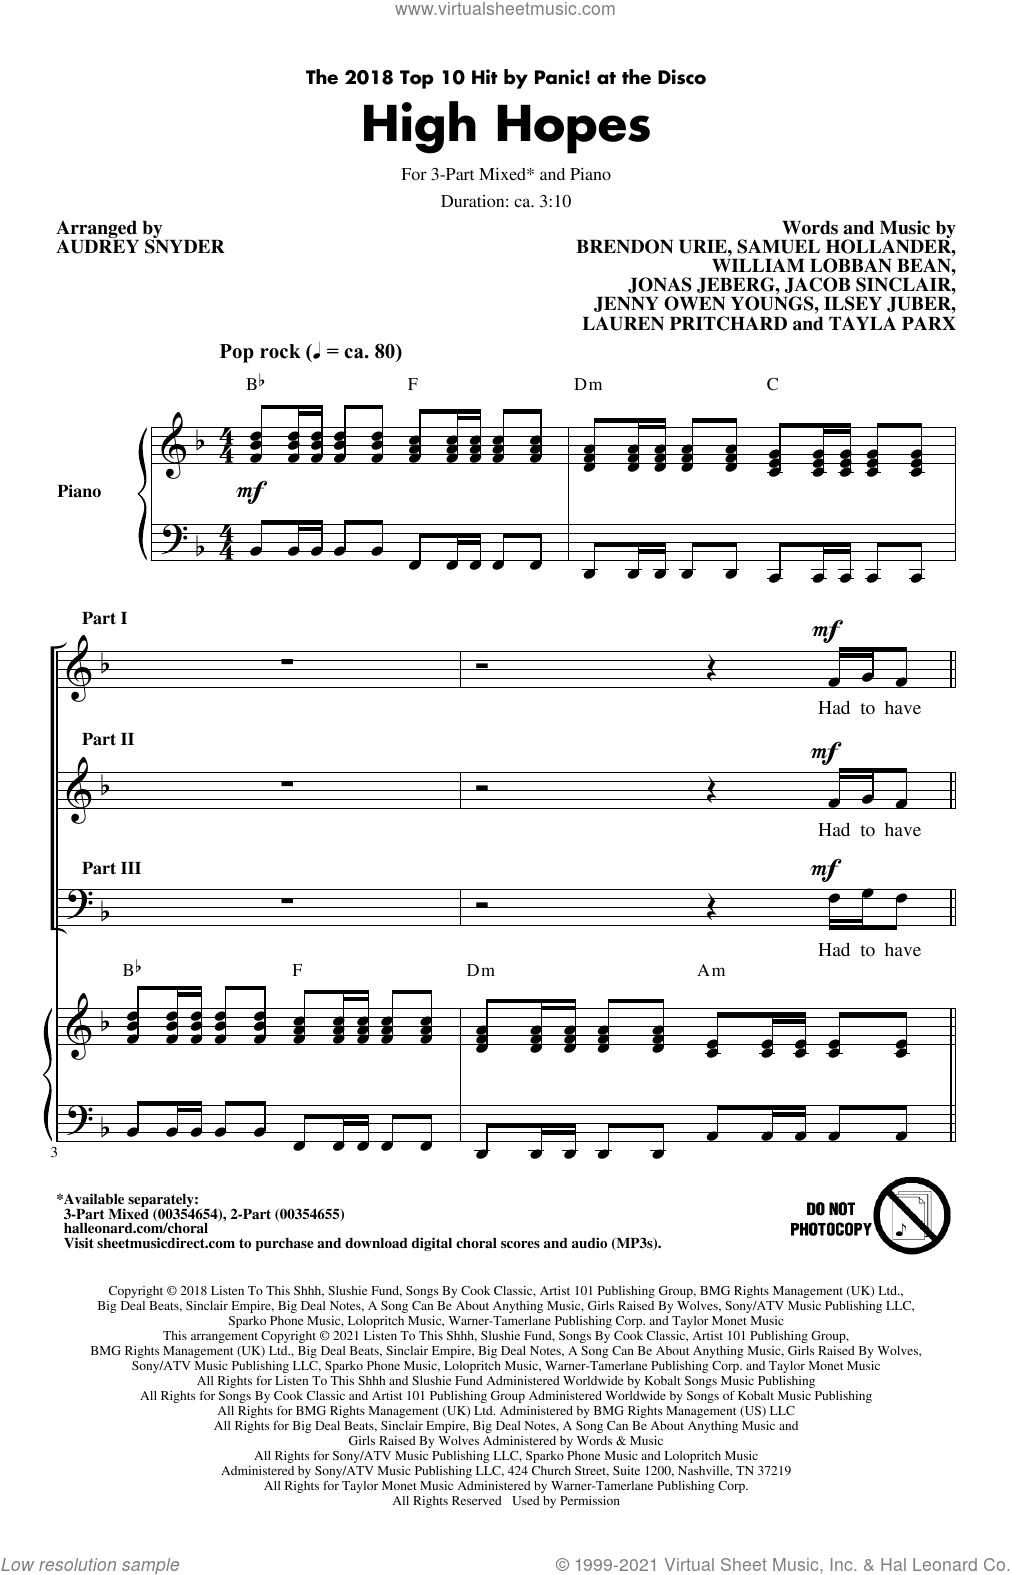 High Hopes (arr. Audrey Snyder) sheet music for choir (3-Part Mixed) by Panic! At The Disco, Audrey Snyder, Brendon Urie, Ilsey Juber, Jacob Sinclair, Jenny Owen Youngs, Jonas Jeberg, Lauren Pritchard, Sam Hollander, Tayla Parx and William Lobban Bean, intermediate skill level